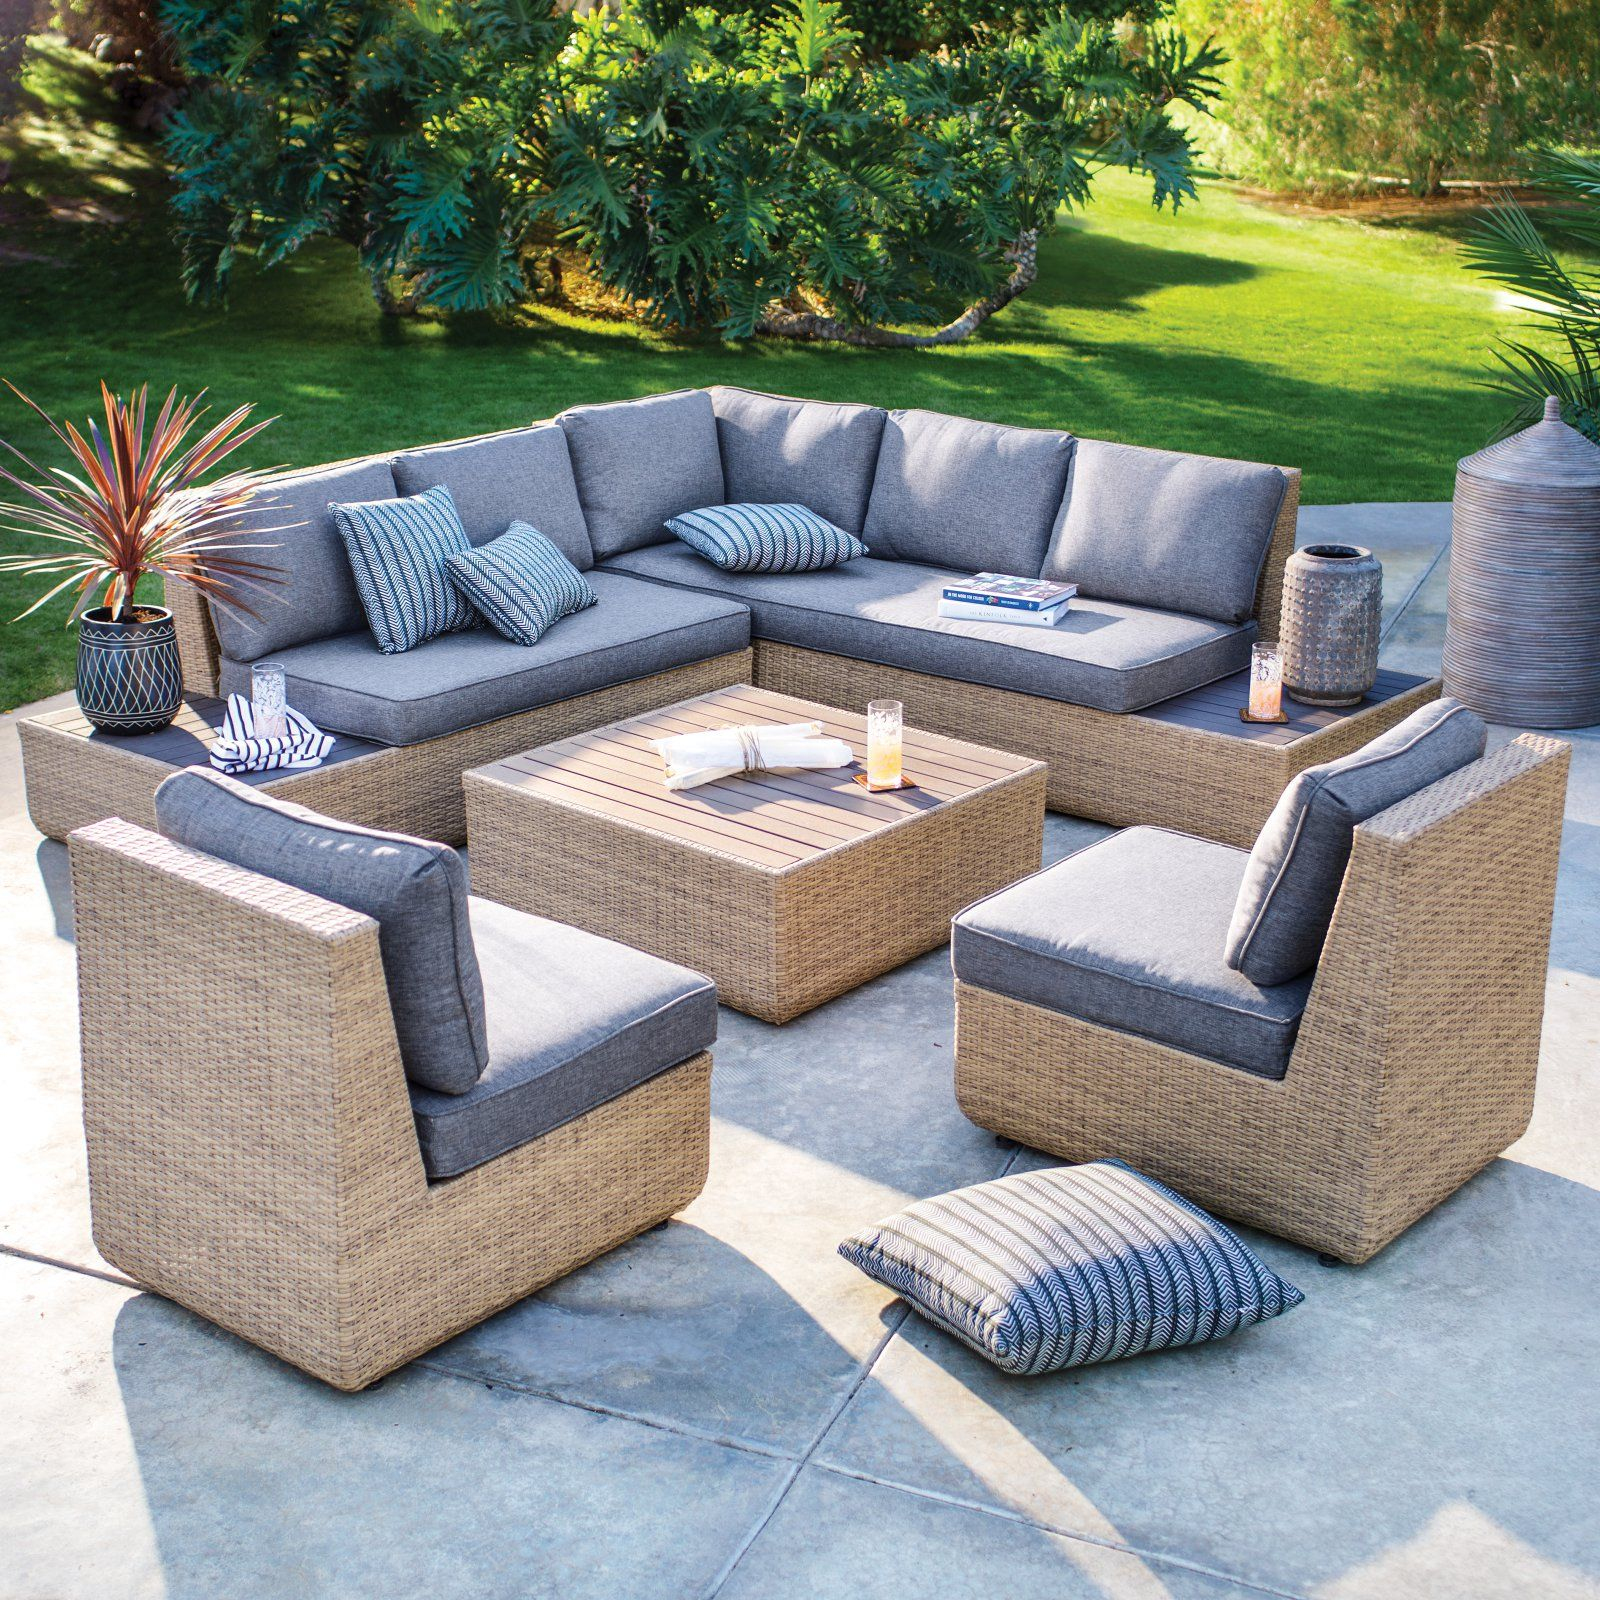 Outdoor Belham Living Luciana Villa All-Weather 5-Piece ... on Outdoor Living Wicker  id=86968